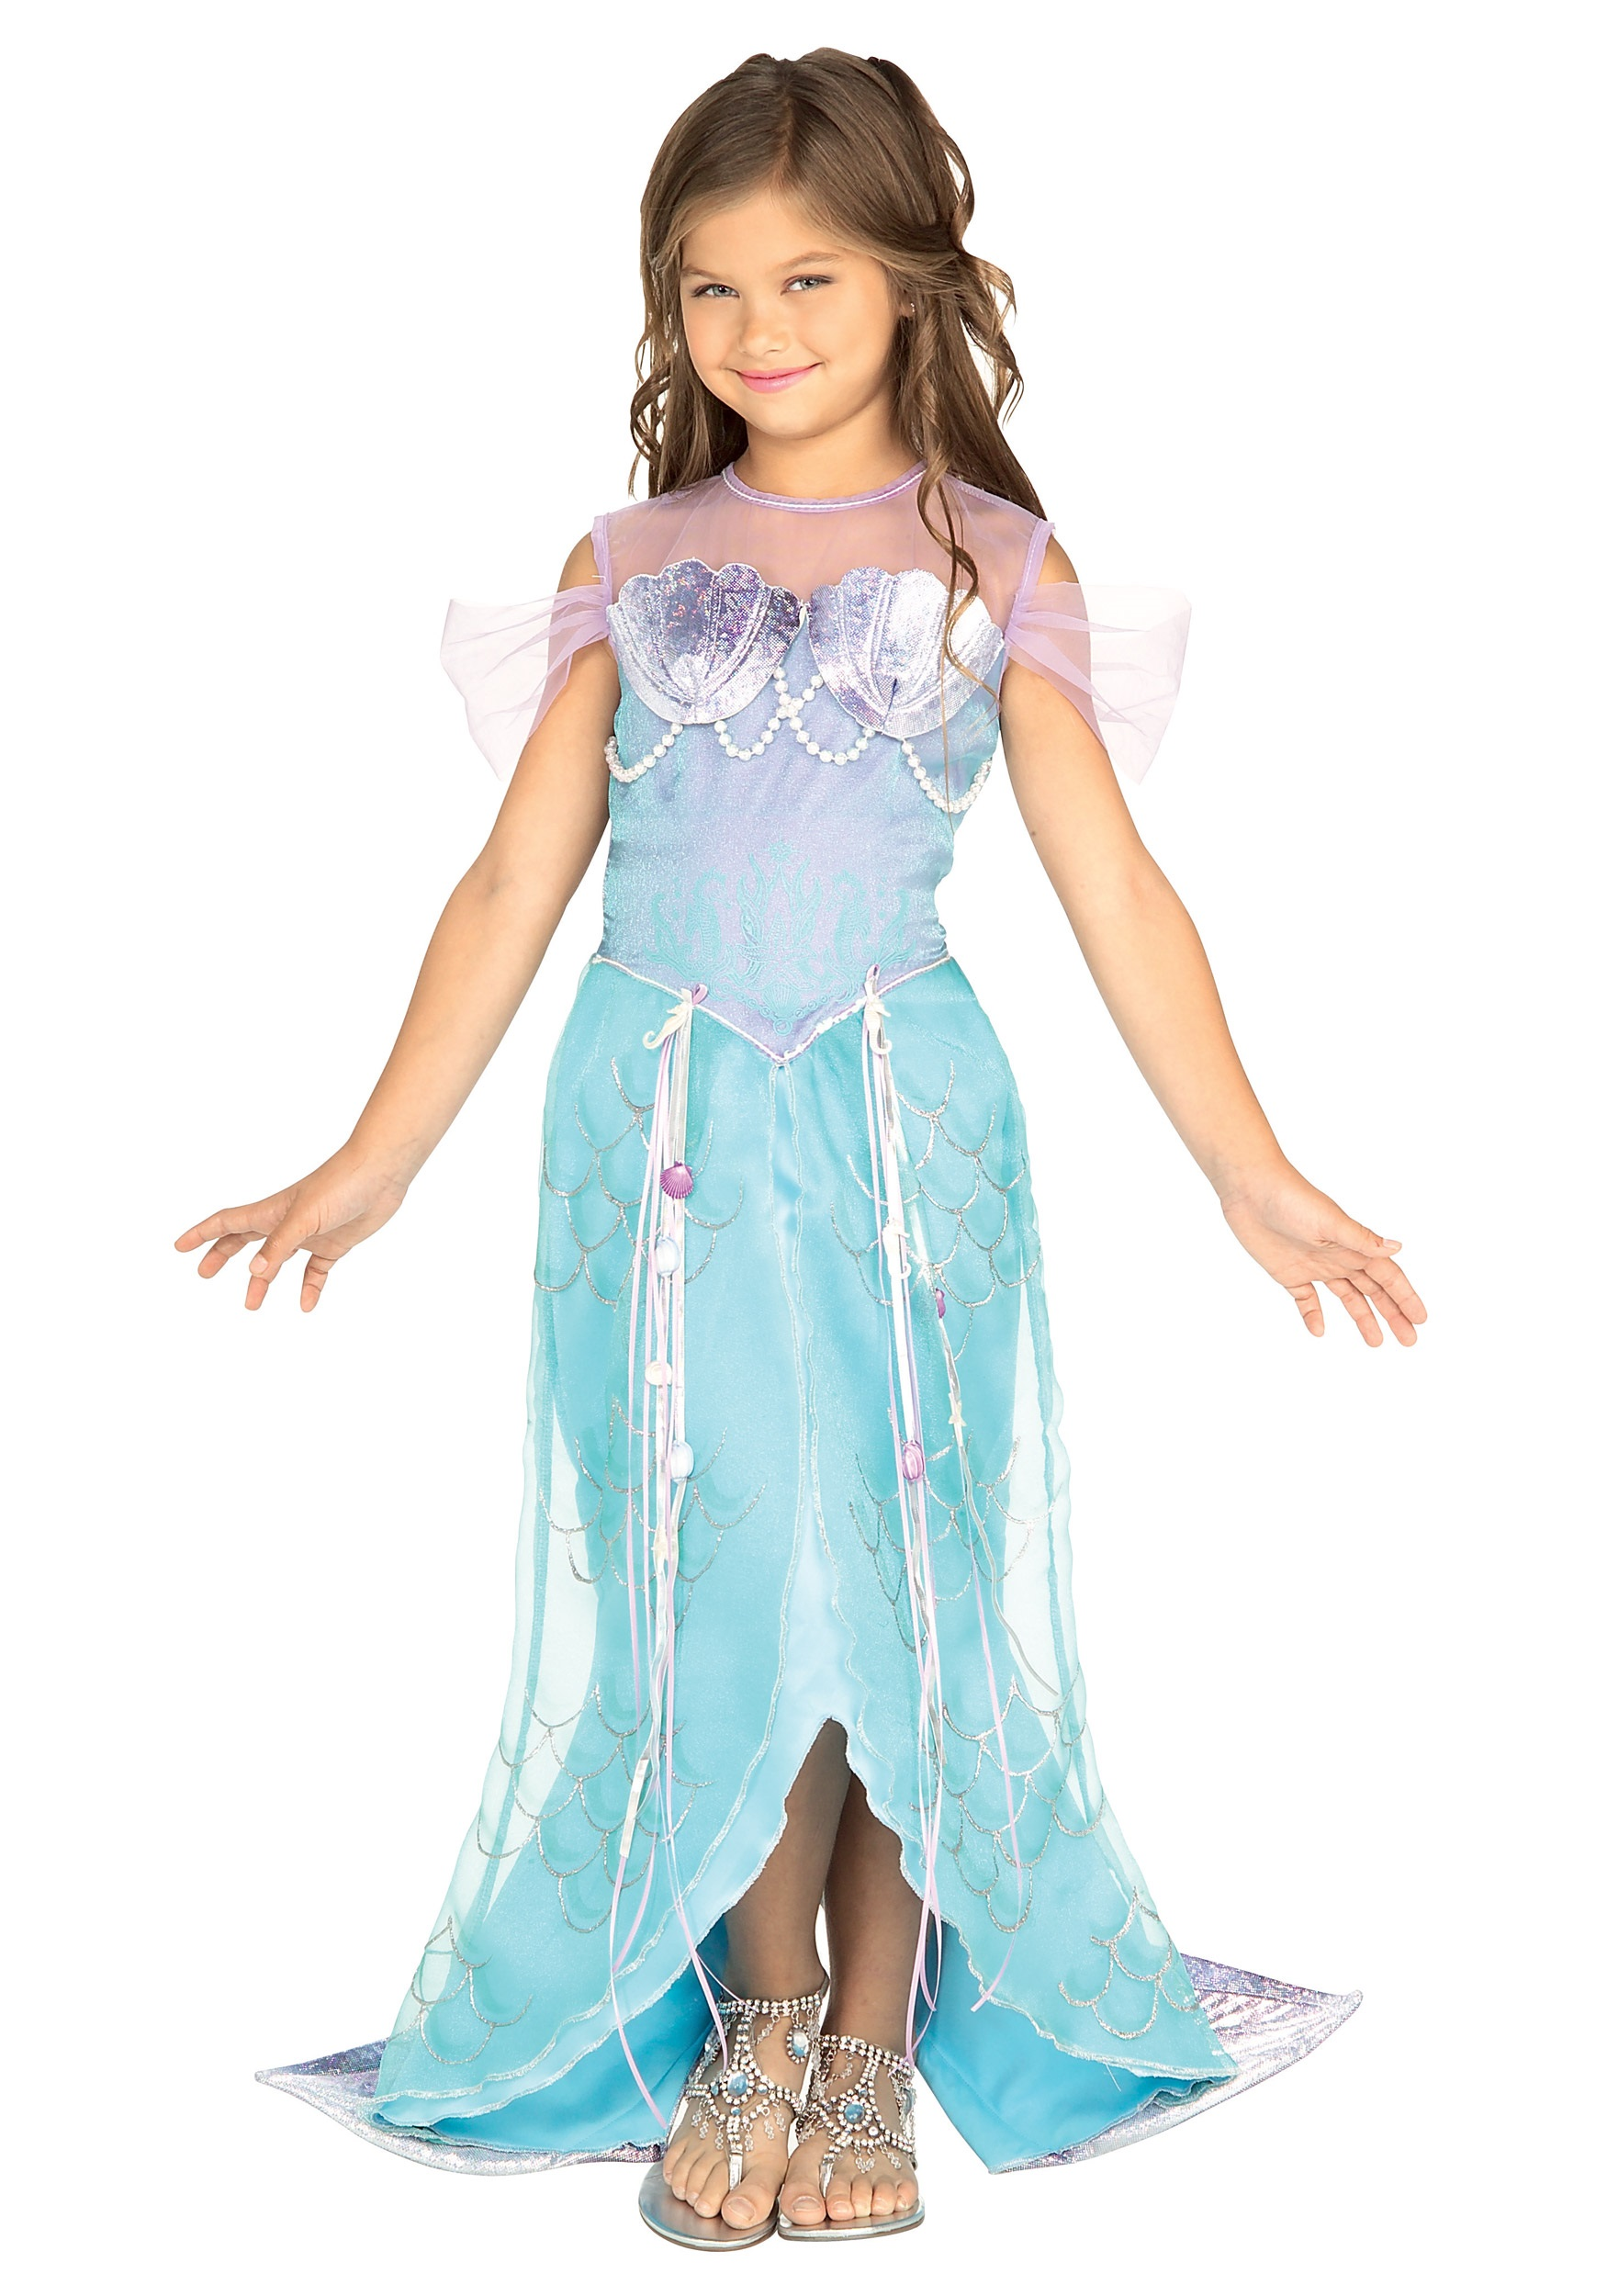 Child Mermaid Princess Costume  sc 1 st  Halloween Costumes : princess costumes halloween  - Germanpascual.Com